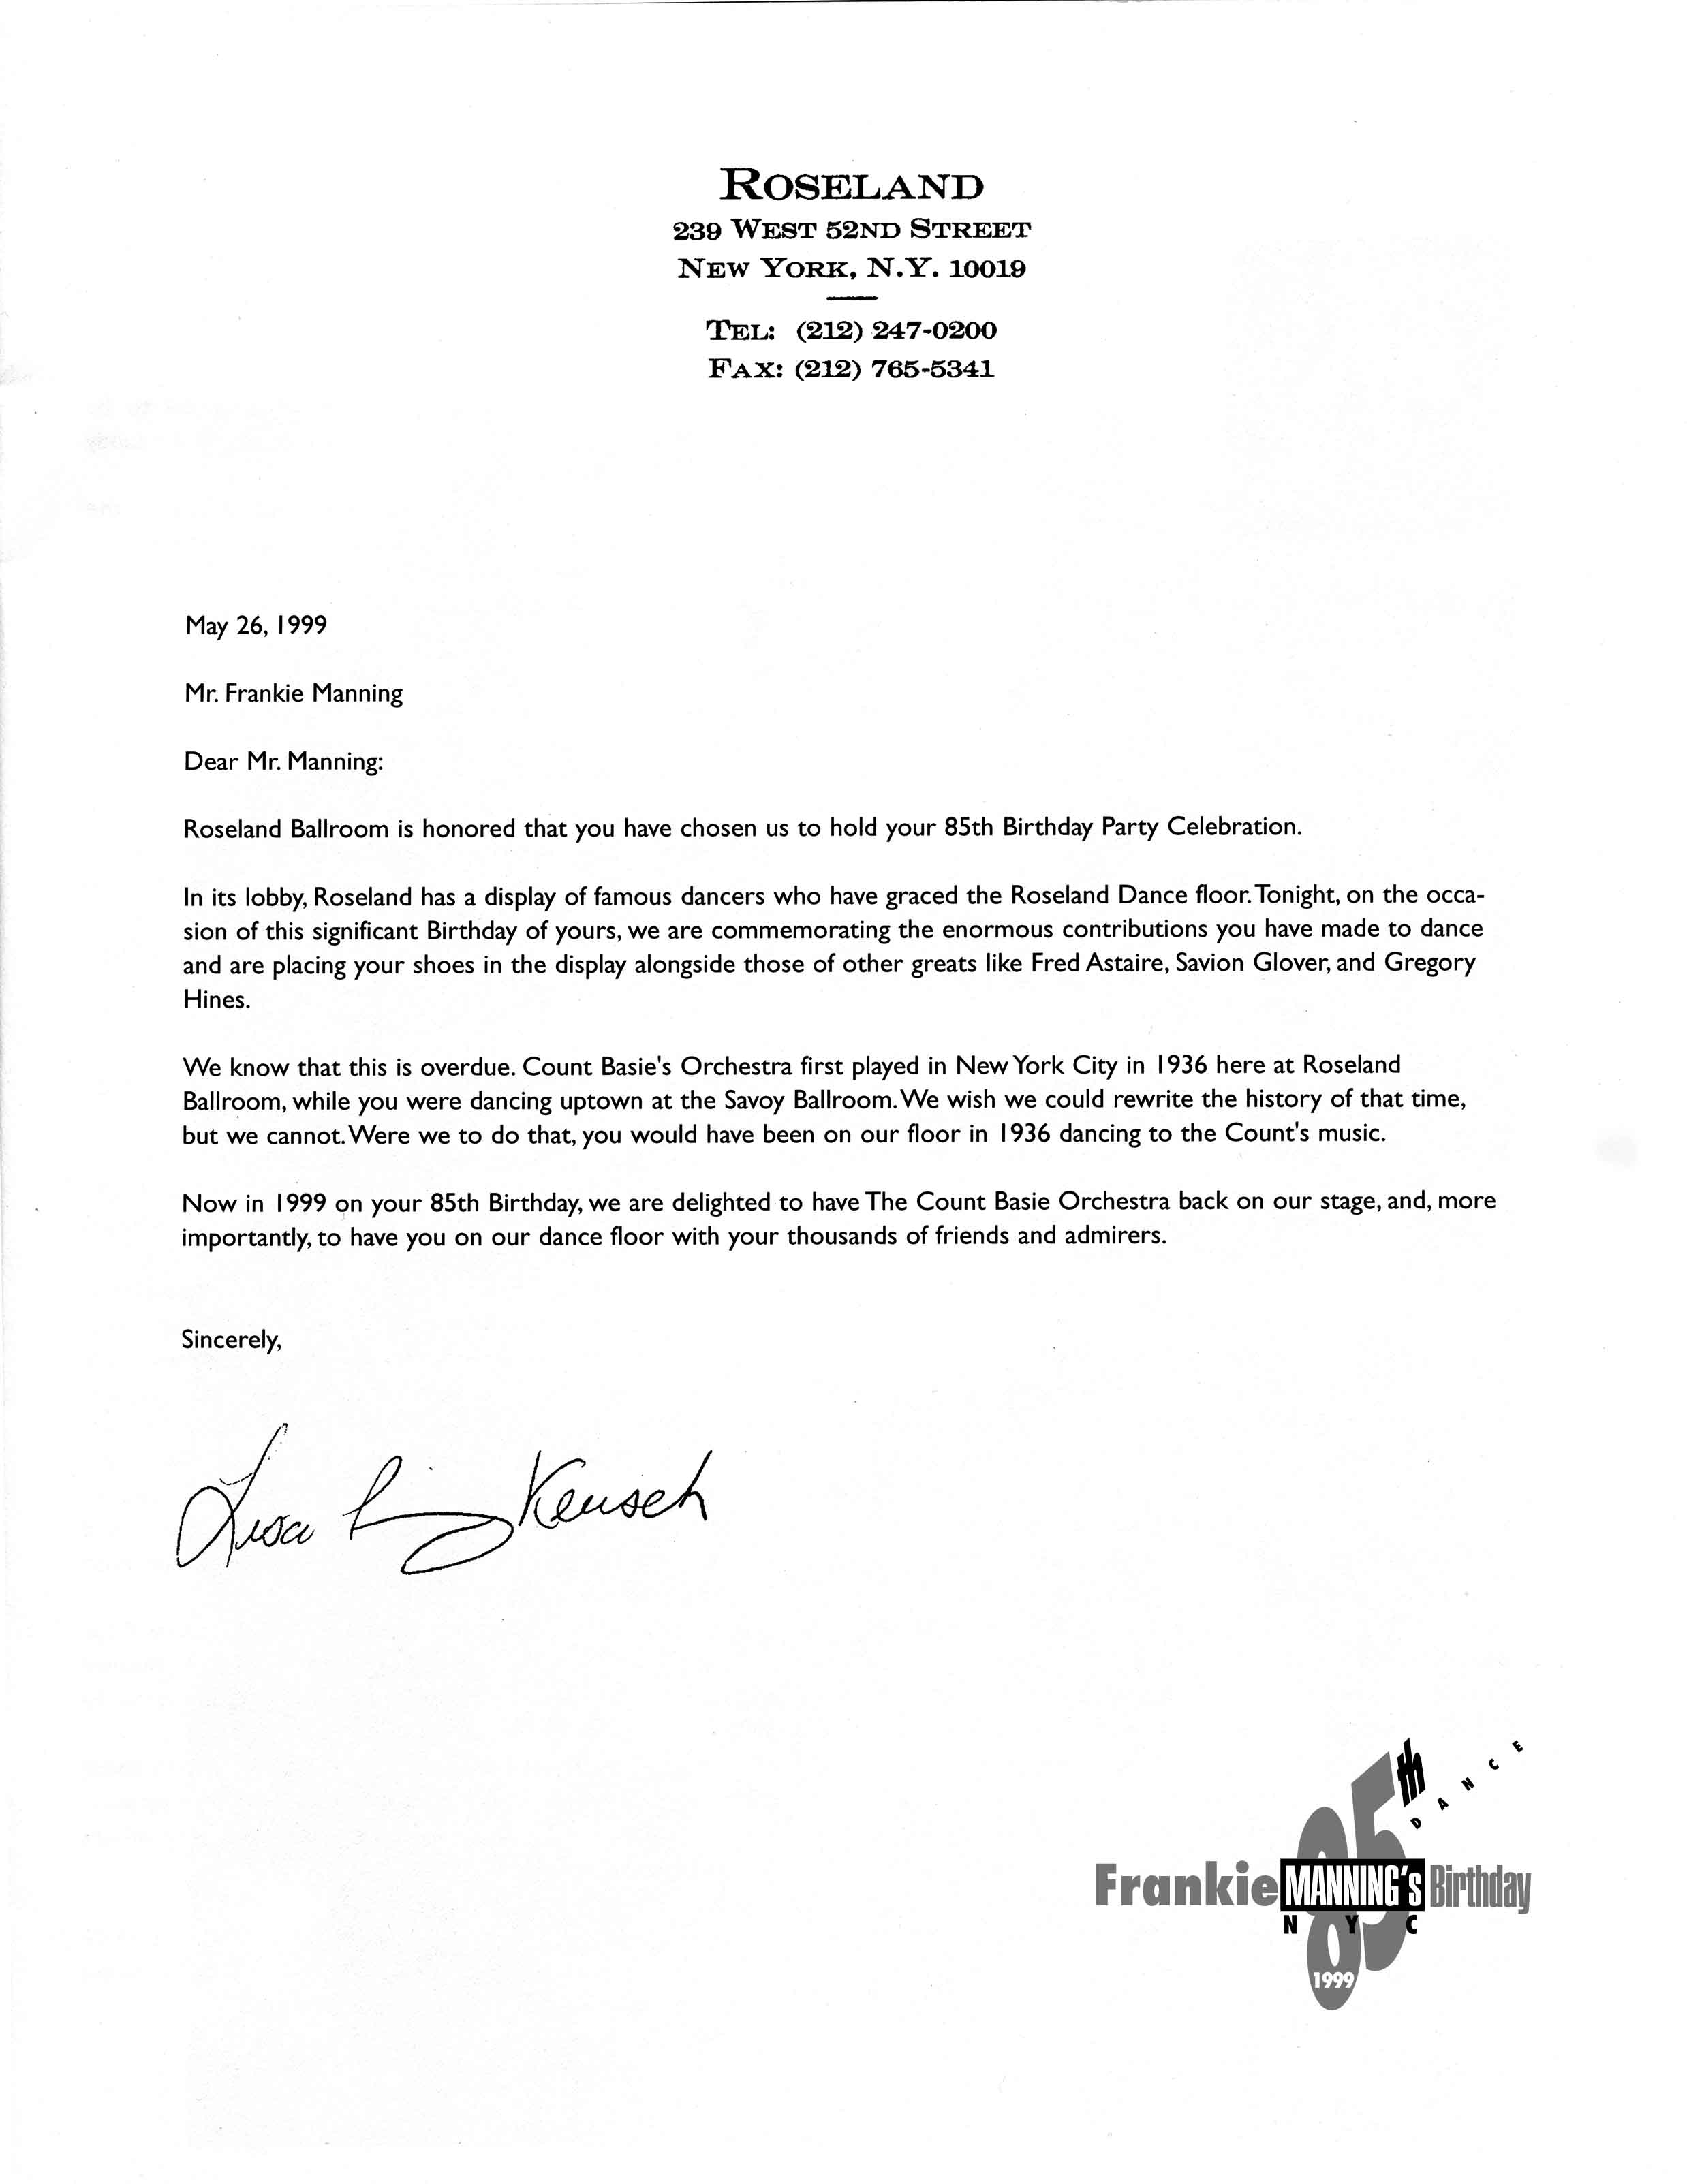 F85-Roseland-Letter-to-Frankie